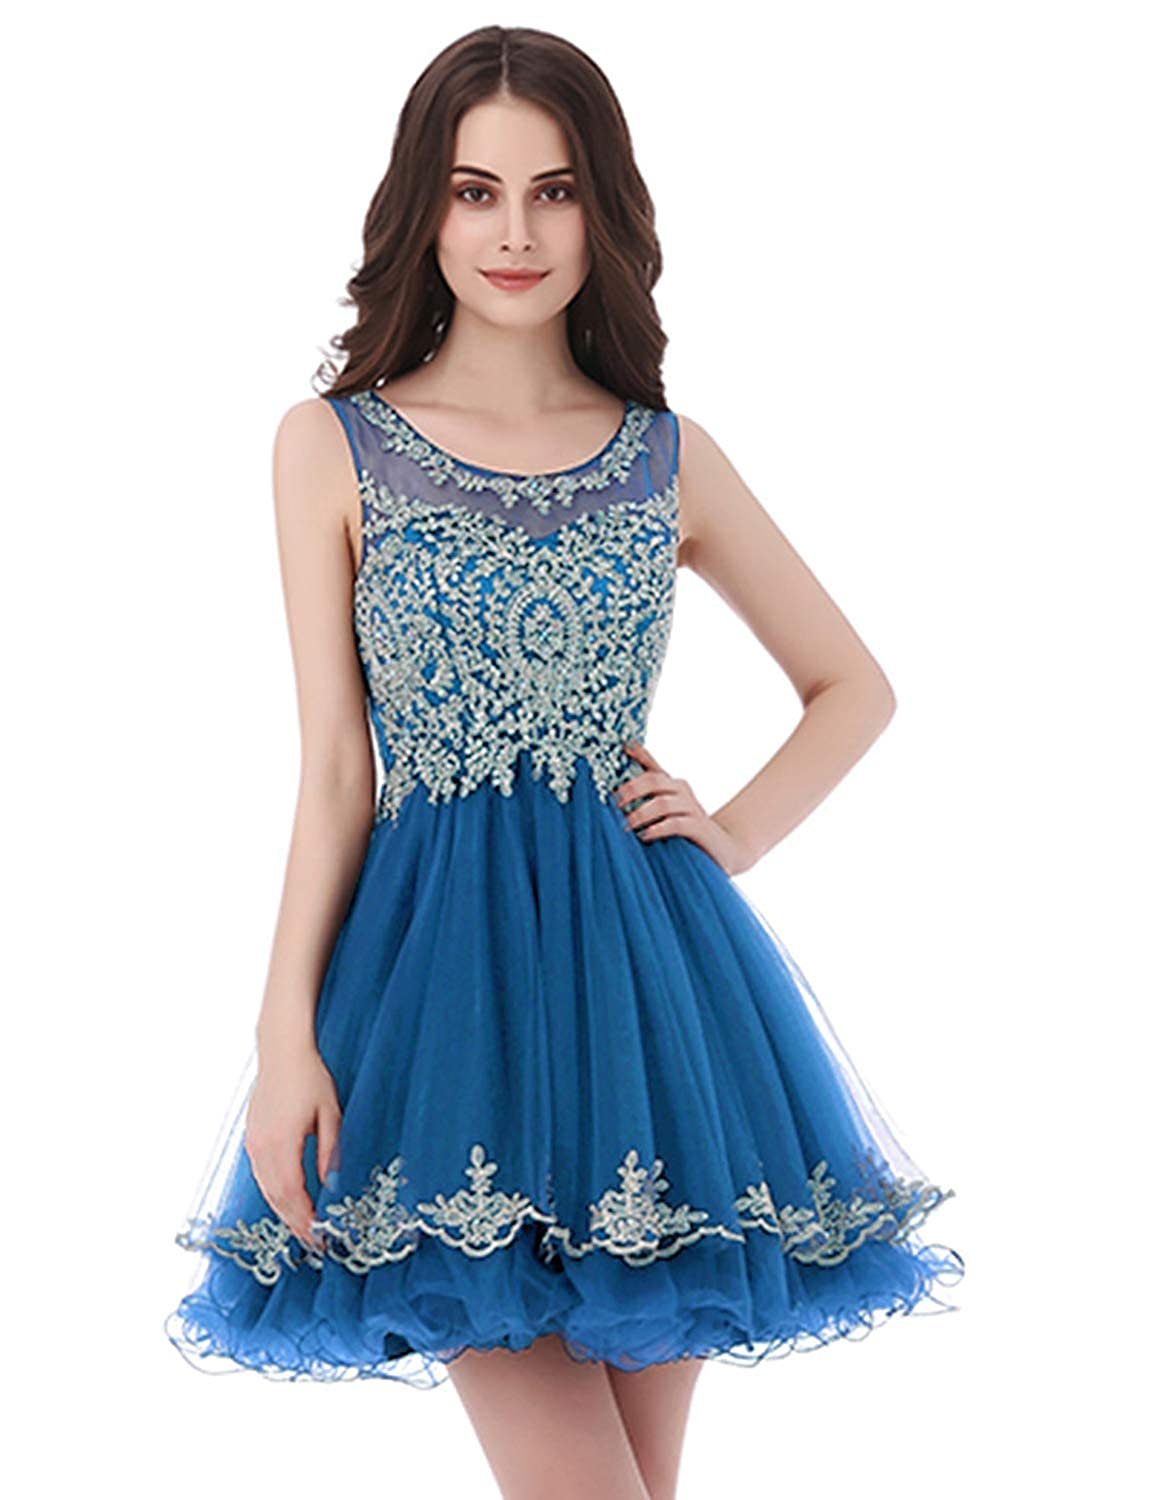 327ocean bluee Belle House Junior's Lace Short Prom Party Ball Gowns Sweetheart Homecoming Dresses